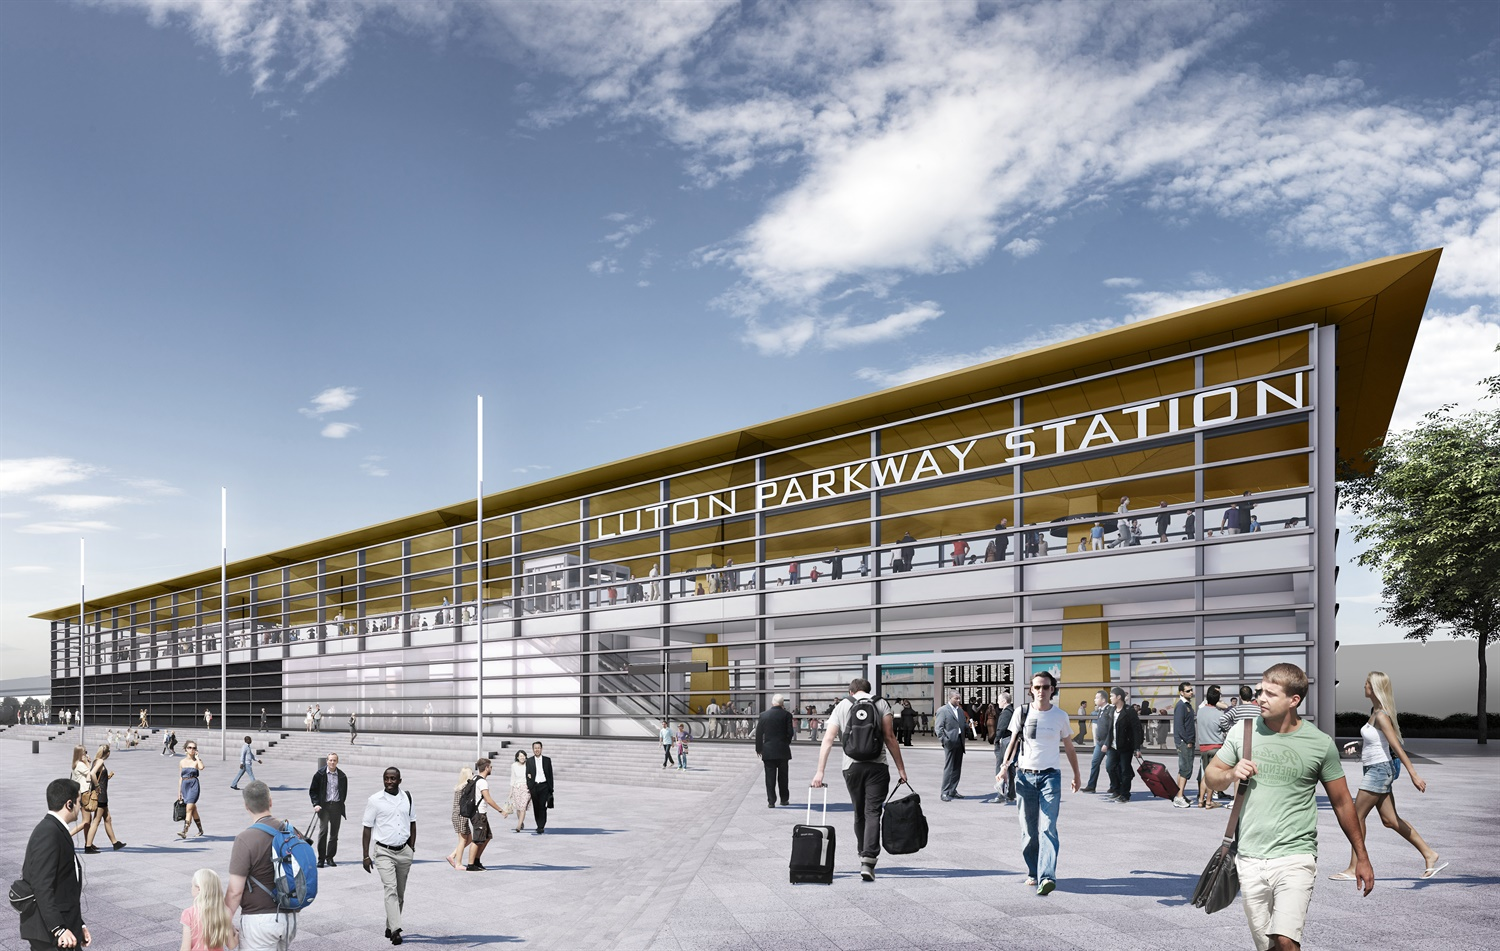 Construction begins on Luton Airport rail link